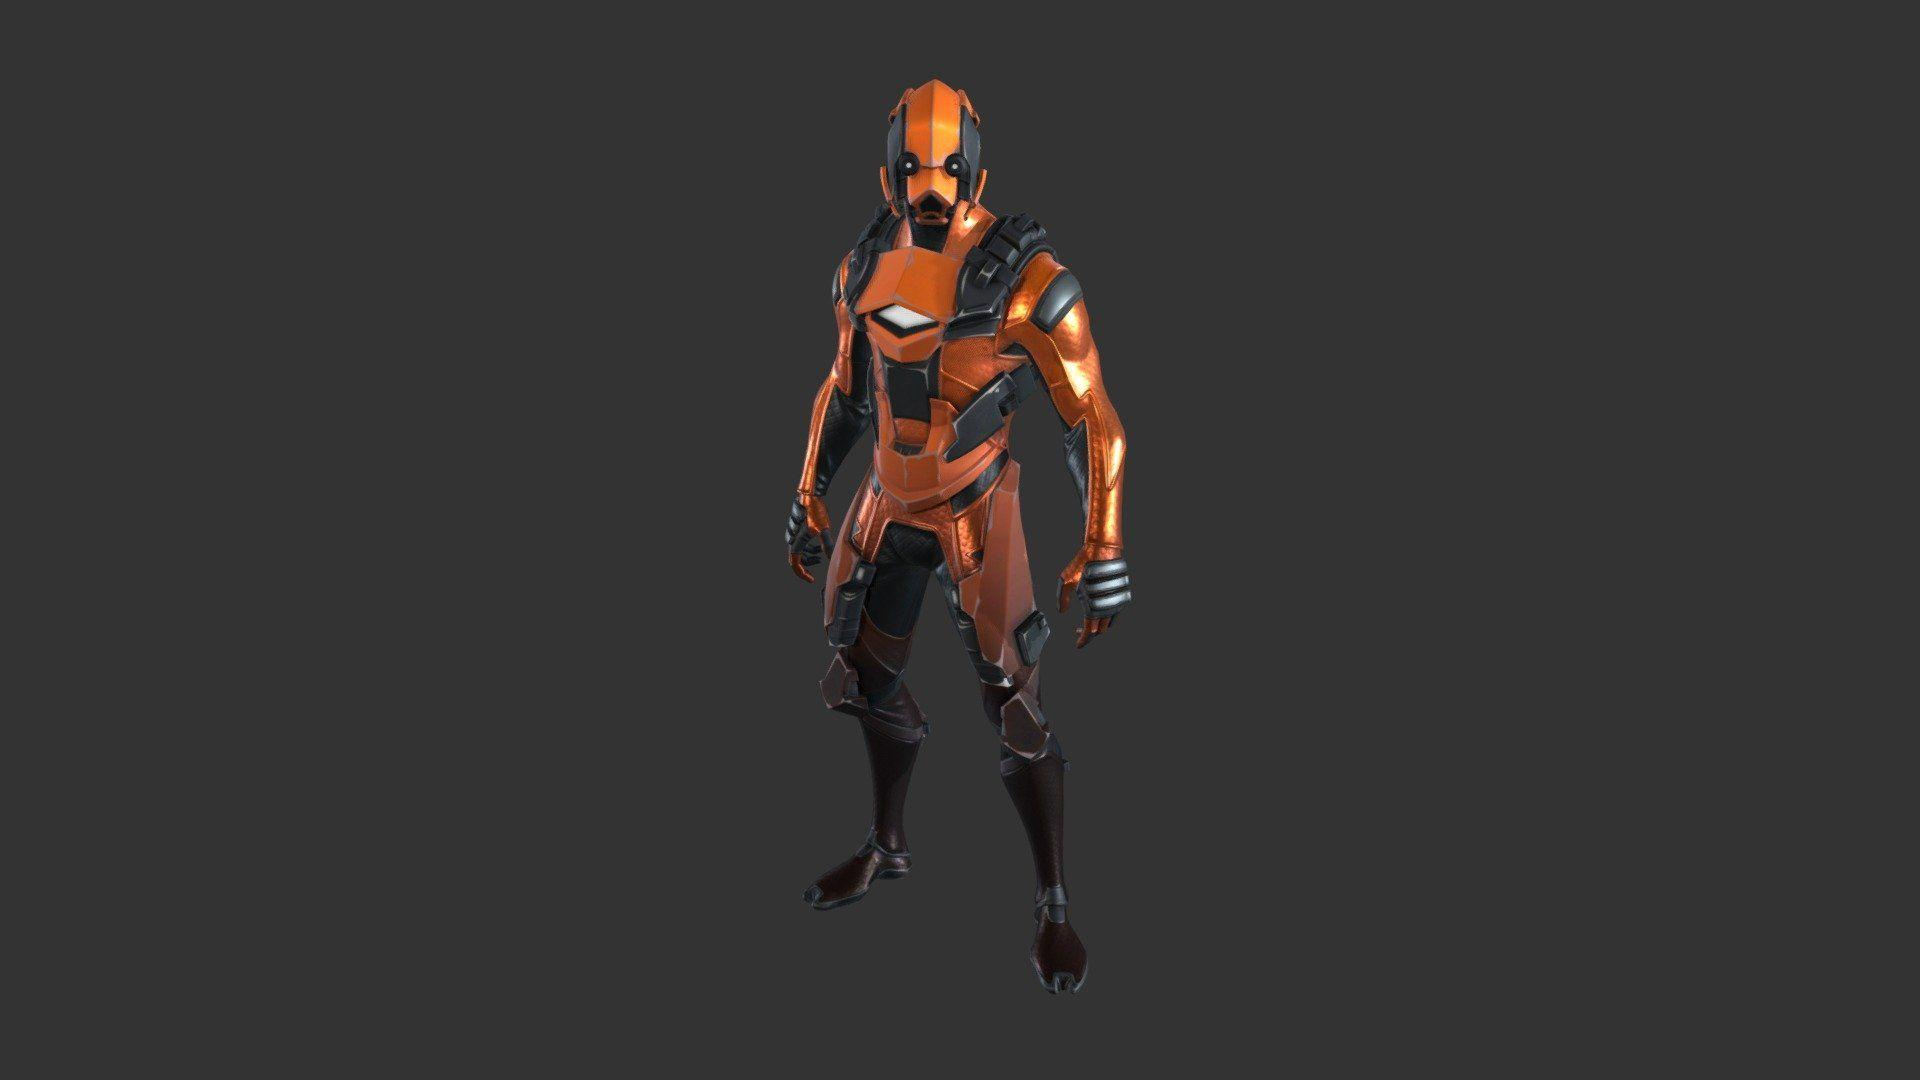 Vertex Outfit - 3D model by Fortnite Skins (@fortniteskins) - Sketchfab